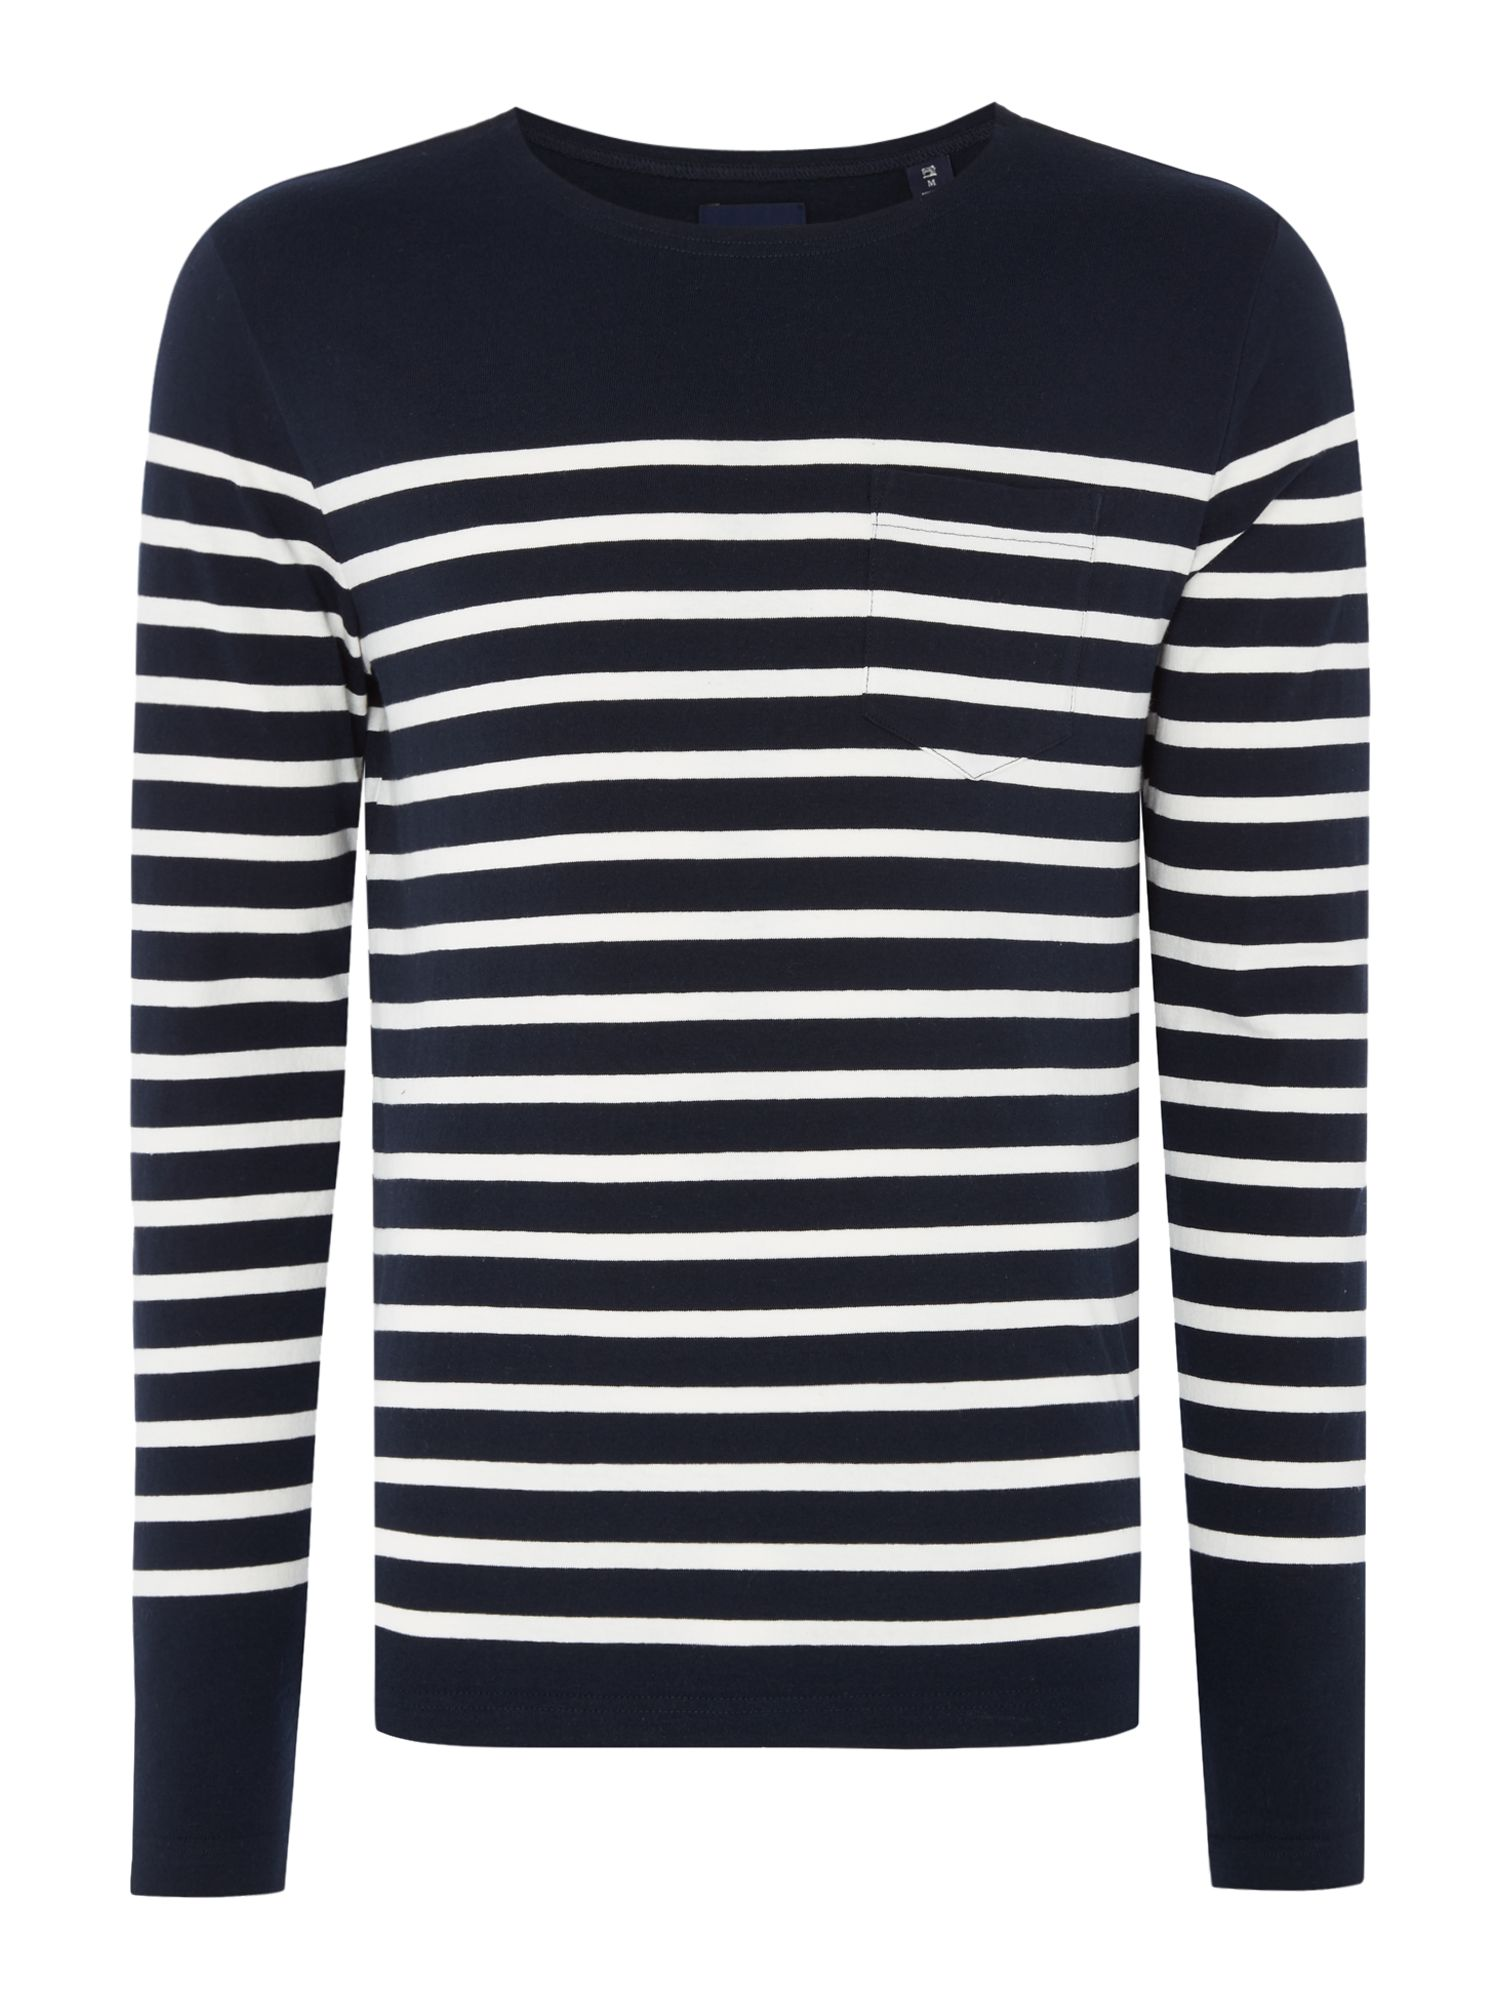 Men's Scotch & Soda Engineered Breton Stripe Sweatshirt, Blue